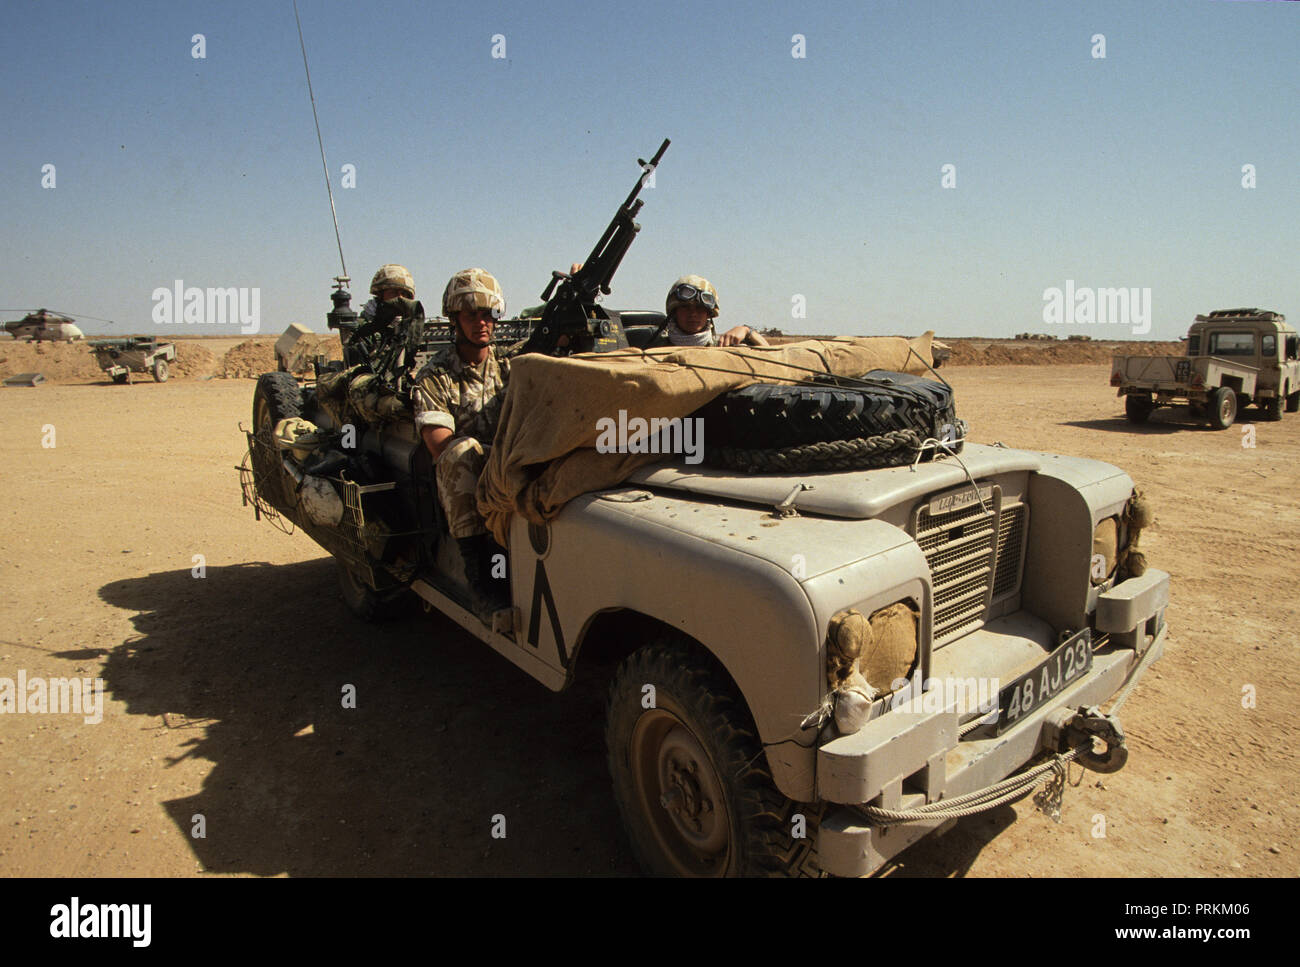 A Landrover used by the British forces during the first Gulf War  Photograph by Dennis Brack bb24 - Stock Image